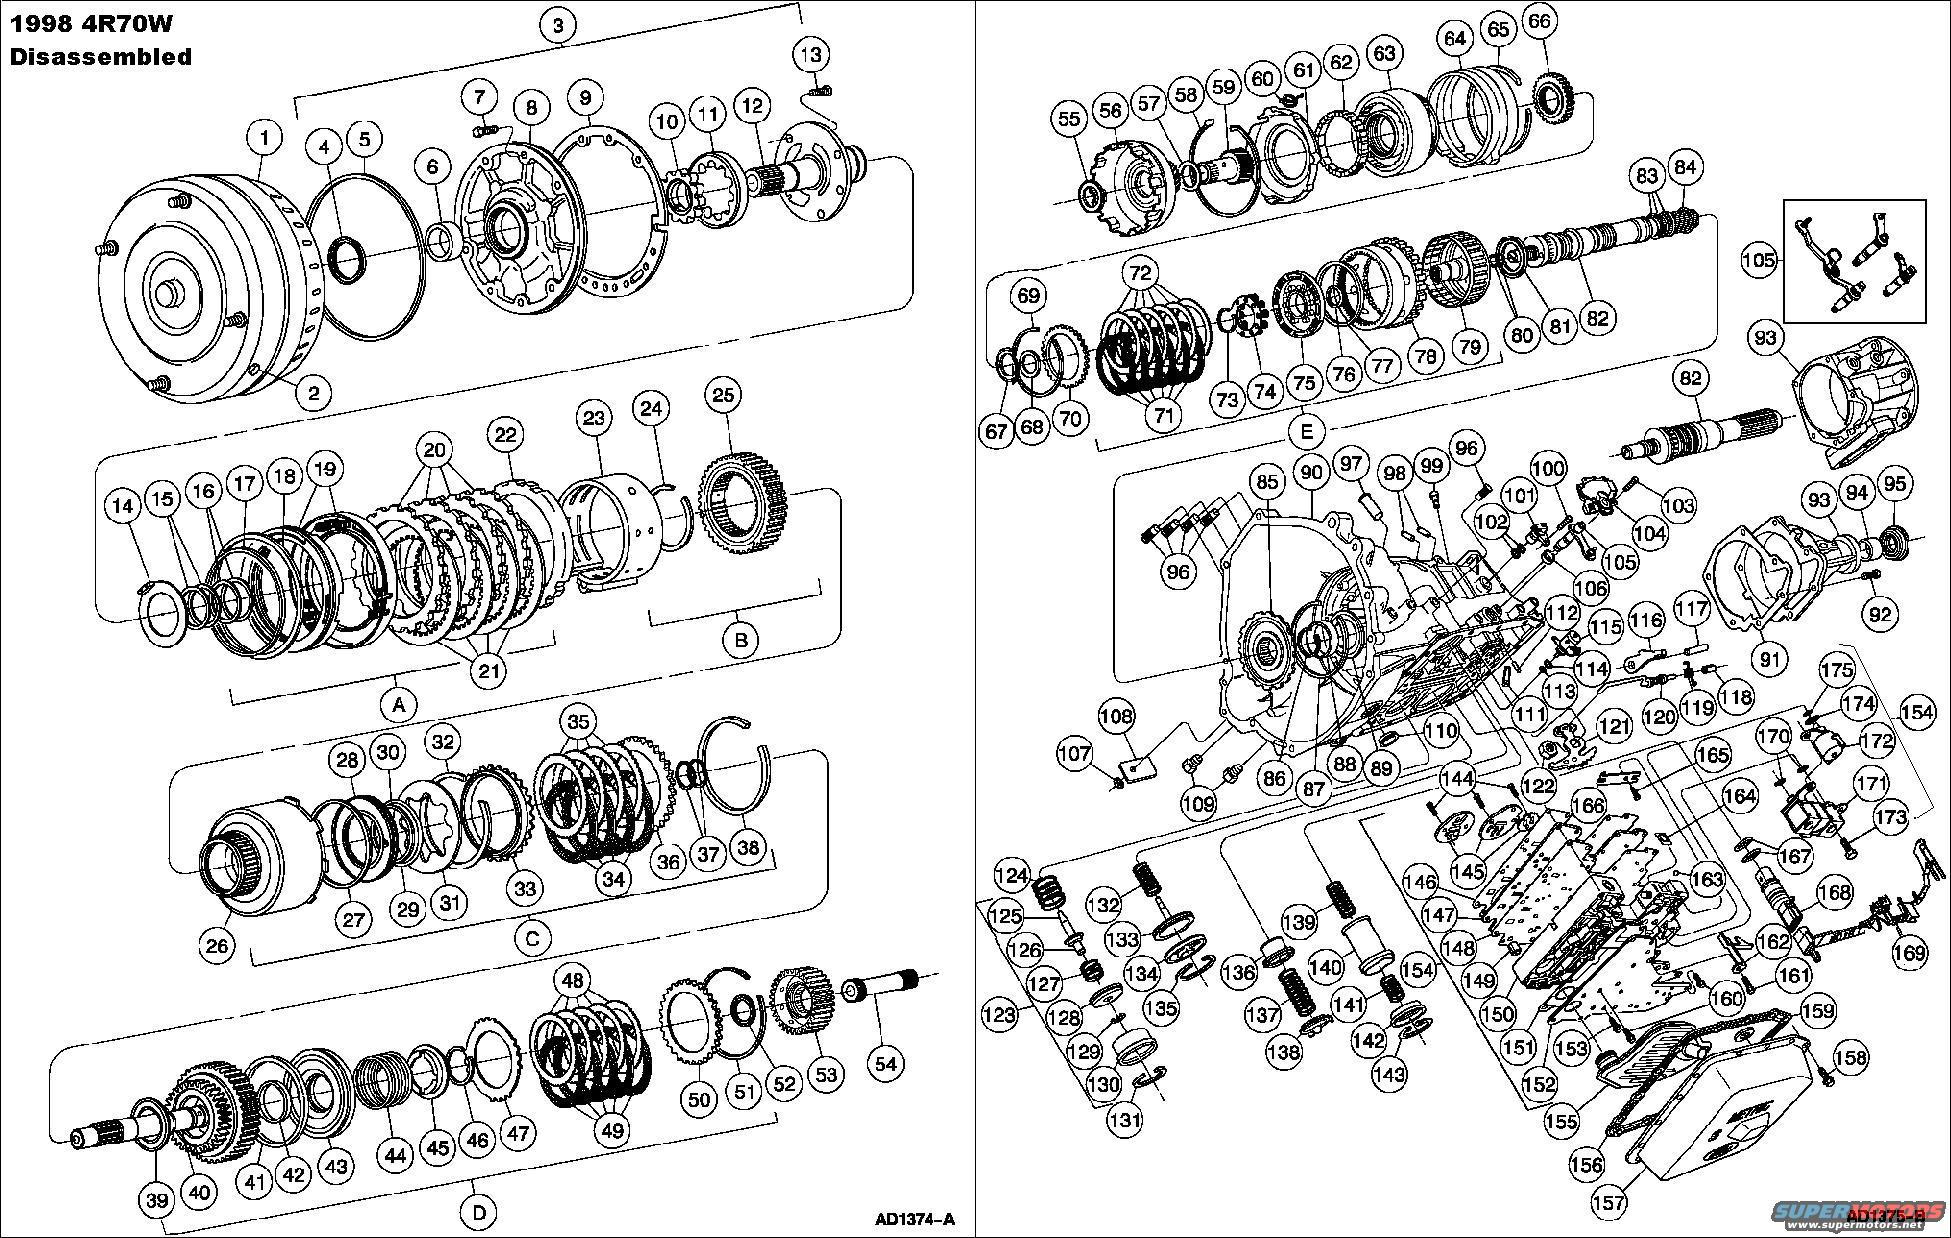 hight resolution of ford 4r70w diagram wiring diagram expert 4r70w diagram fir